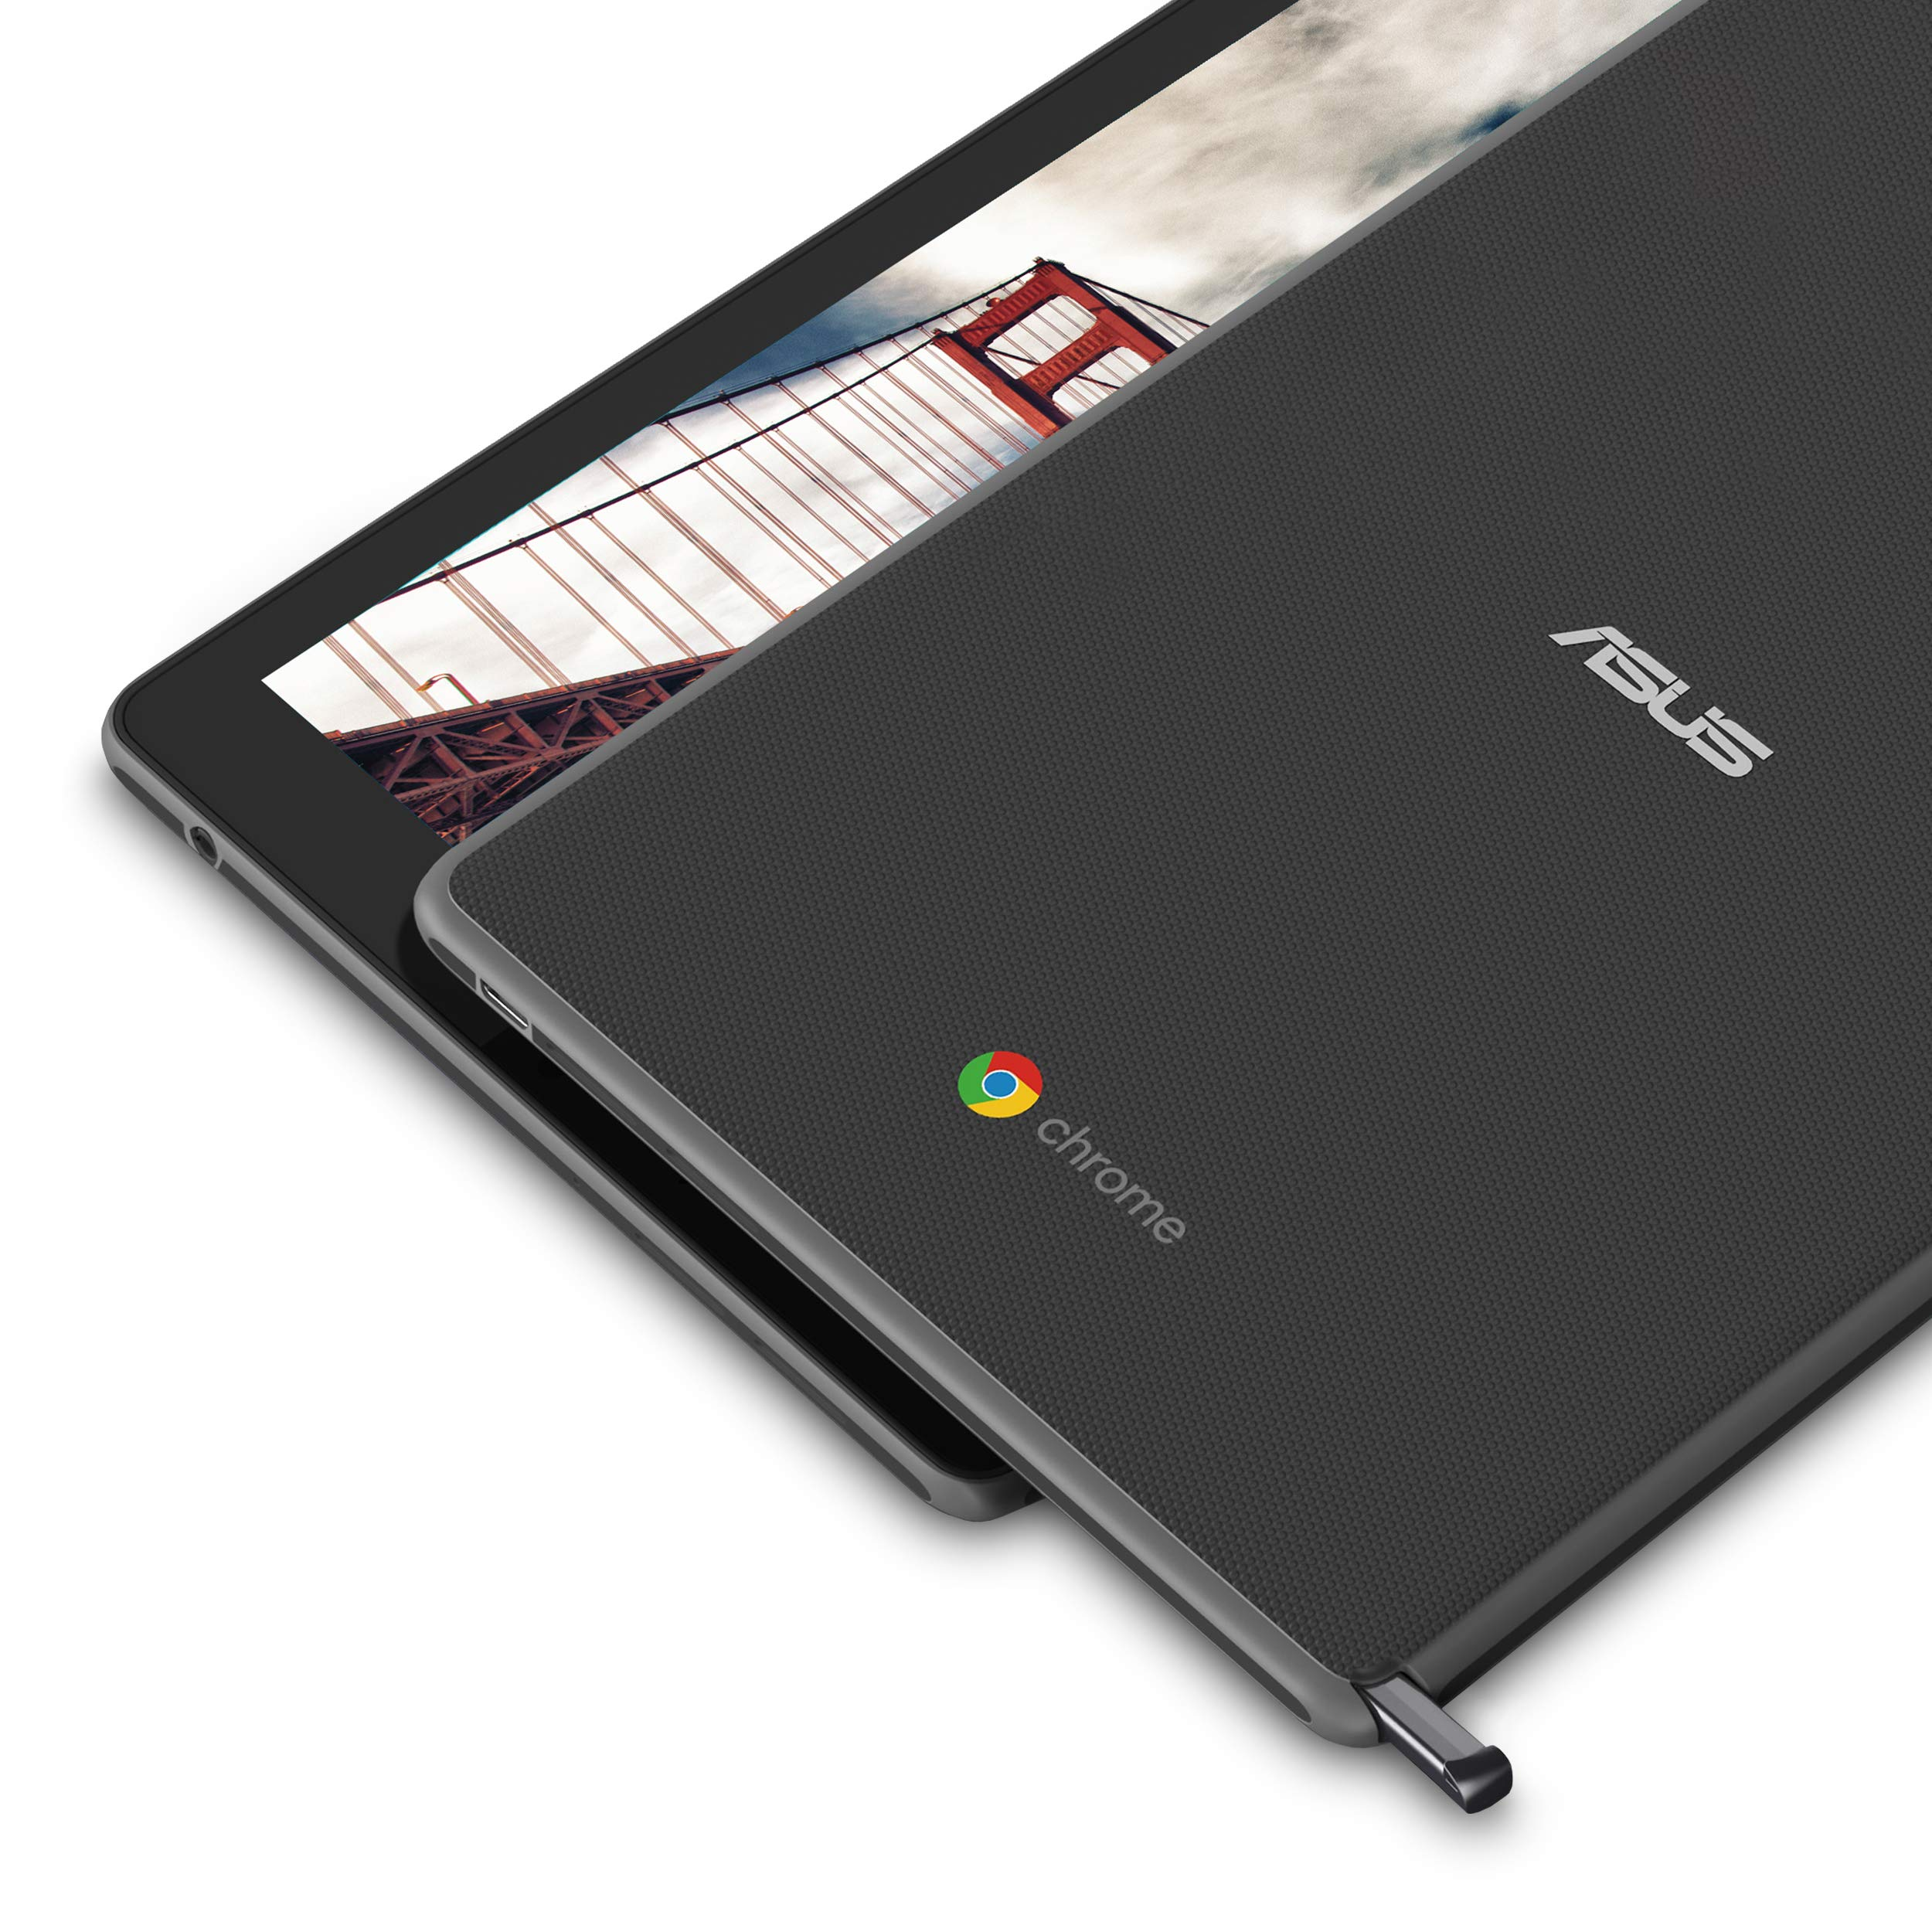 Asus Chromebook Tablet CT100, 9.7'' Qxga (1536x2048) Touchscreen, OP1 Hexa-core Processor, 4GB RAM, 32GB eMMC Storage, Rugged Military-Spec 810G, Dark Grey, K-12, Chrome OS, Includes Stylus, CT100PA-YS by ASUS (Image #2)